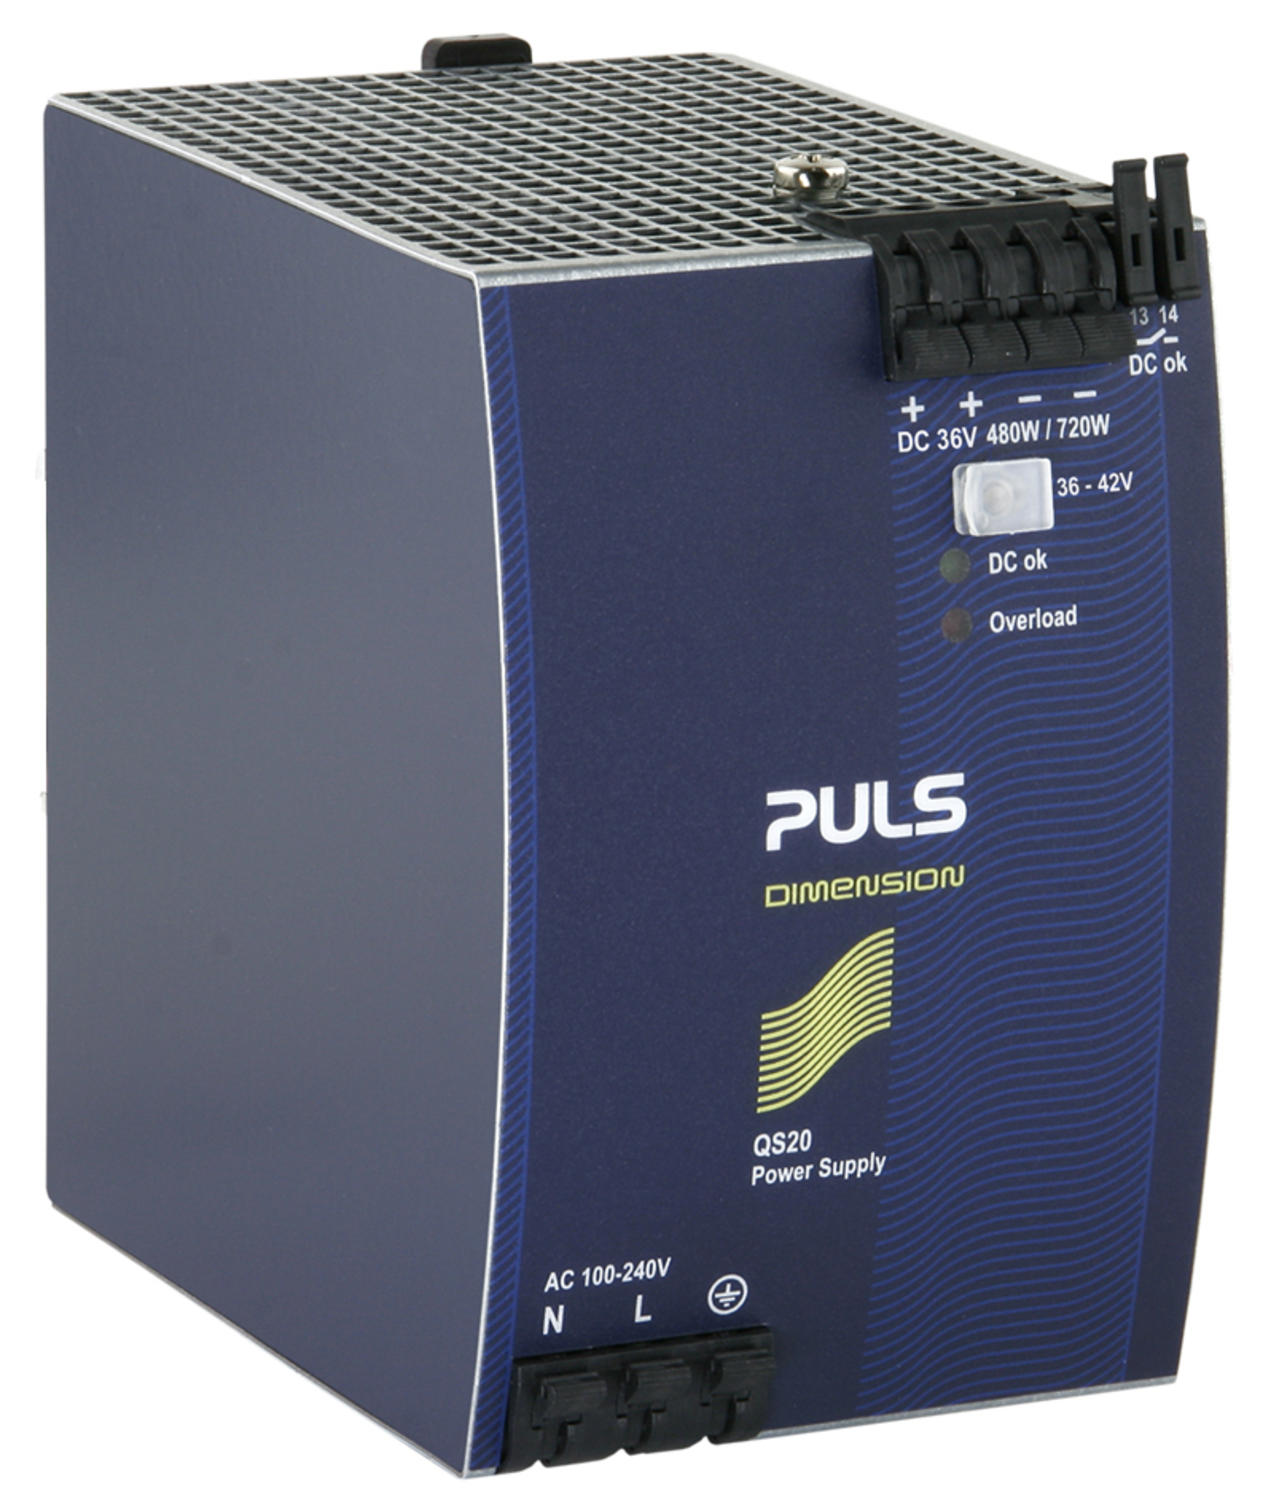 Power supply 1-phase, 36 V dc Dimension Q series